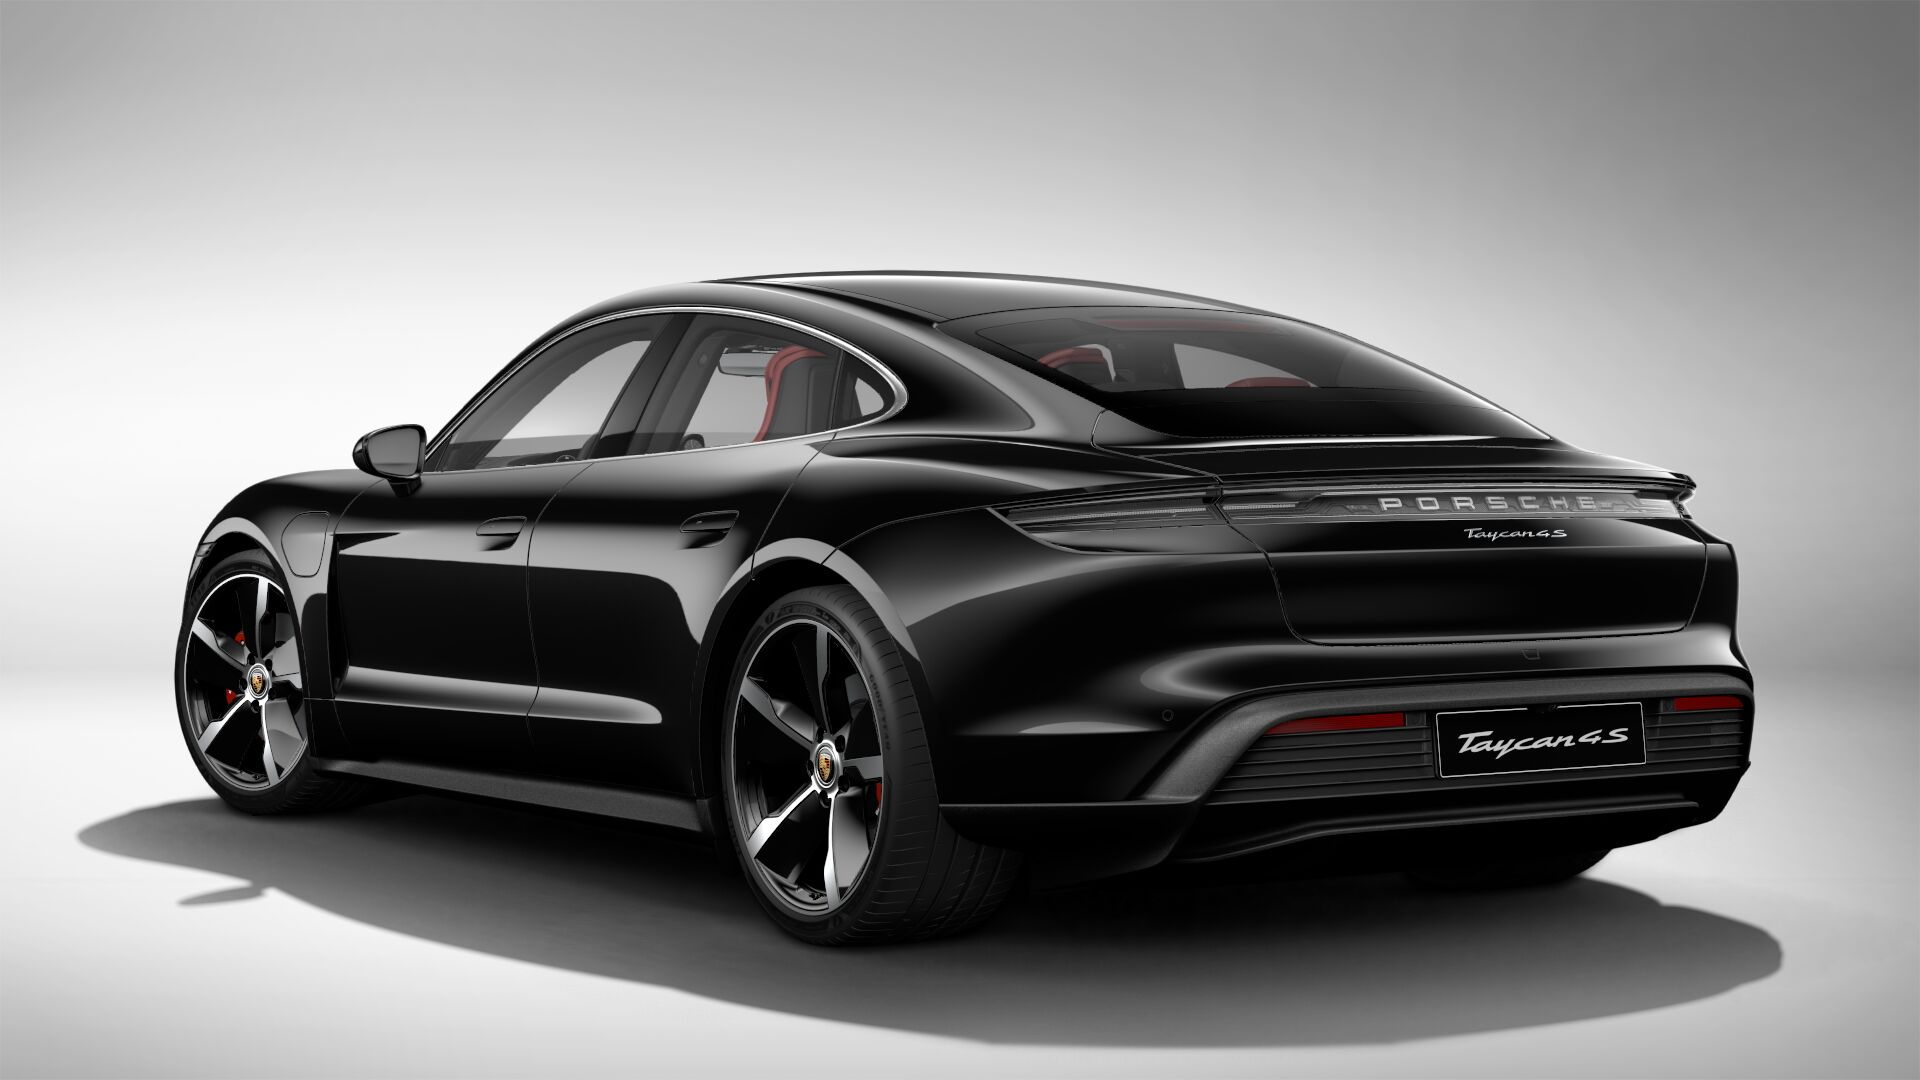 2021 Porsche Taycan 4S Performance Plus